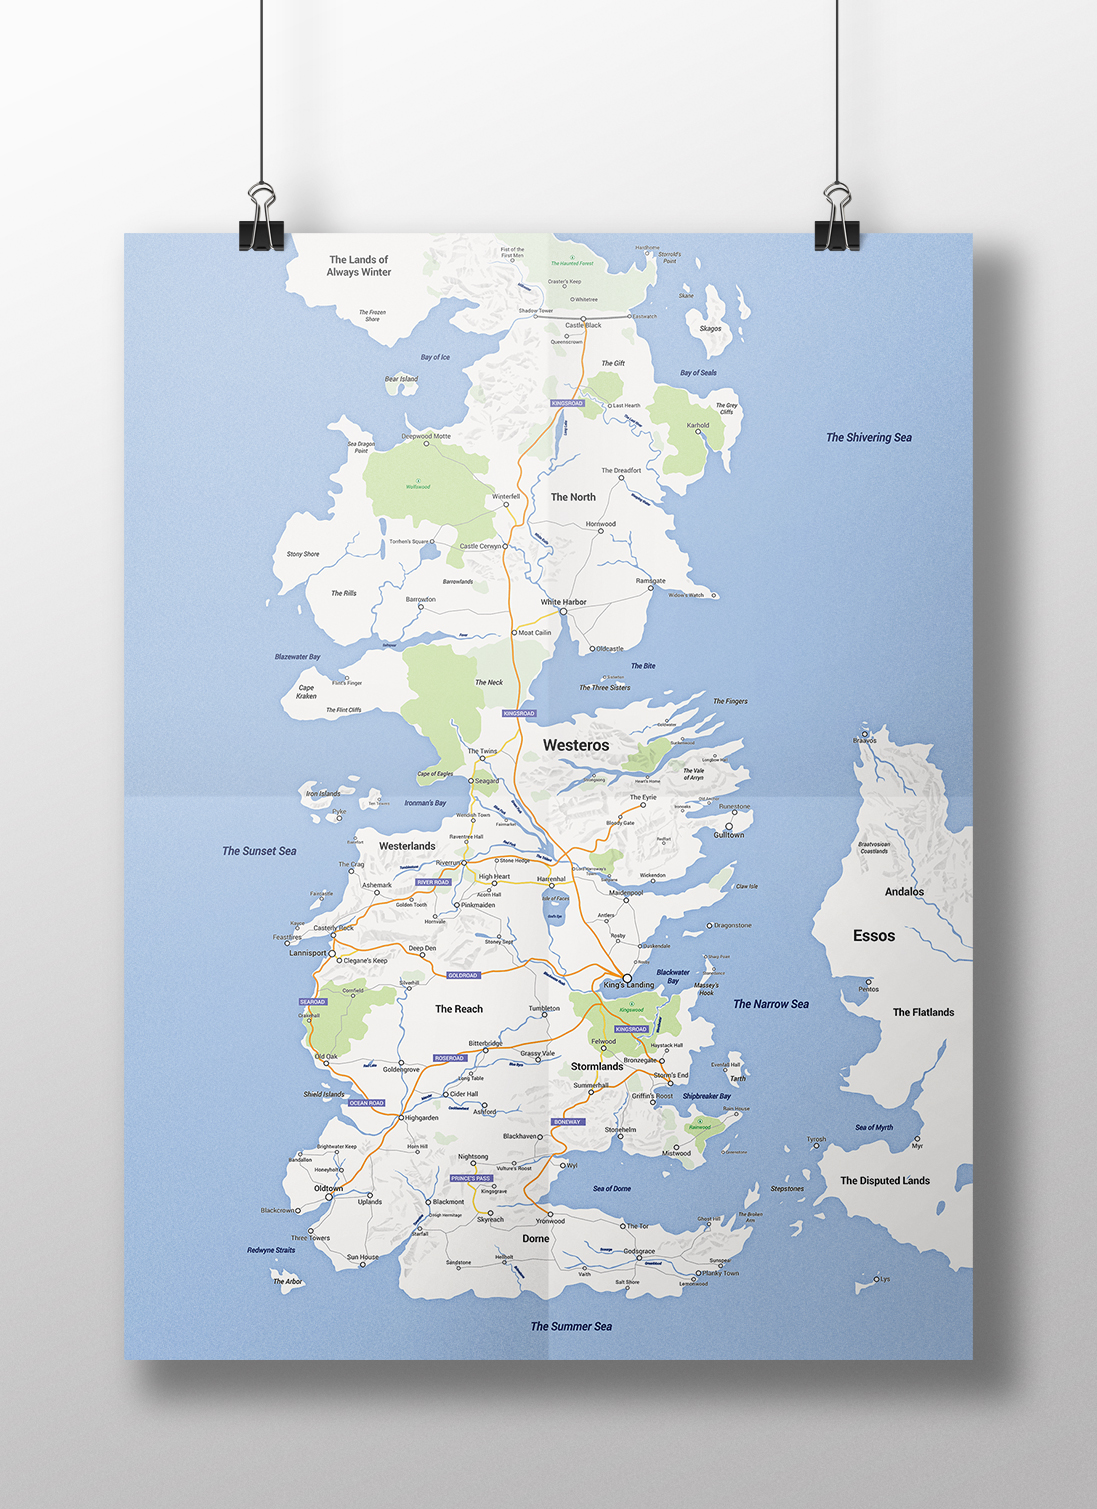 Game of thrones map westeros google maps style digital map modern apple maps on storenvy - Westeros map high resolution ...